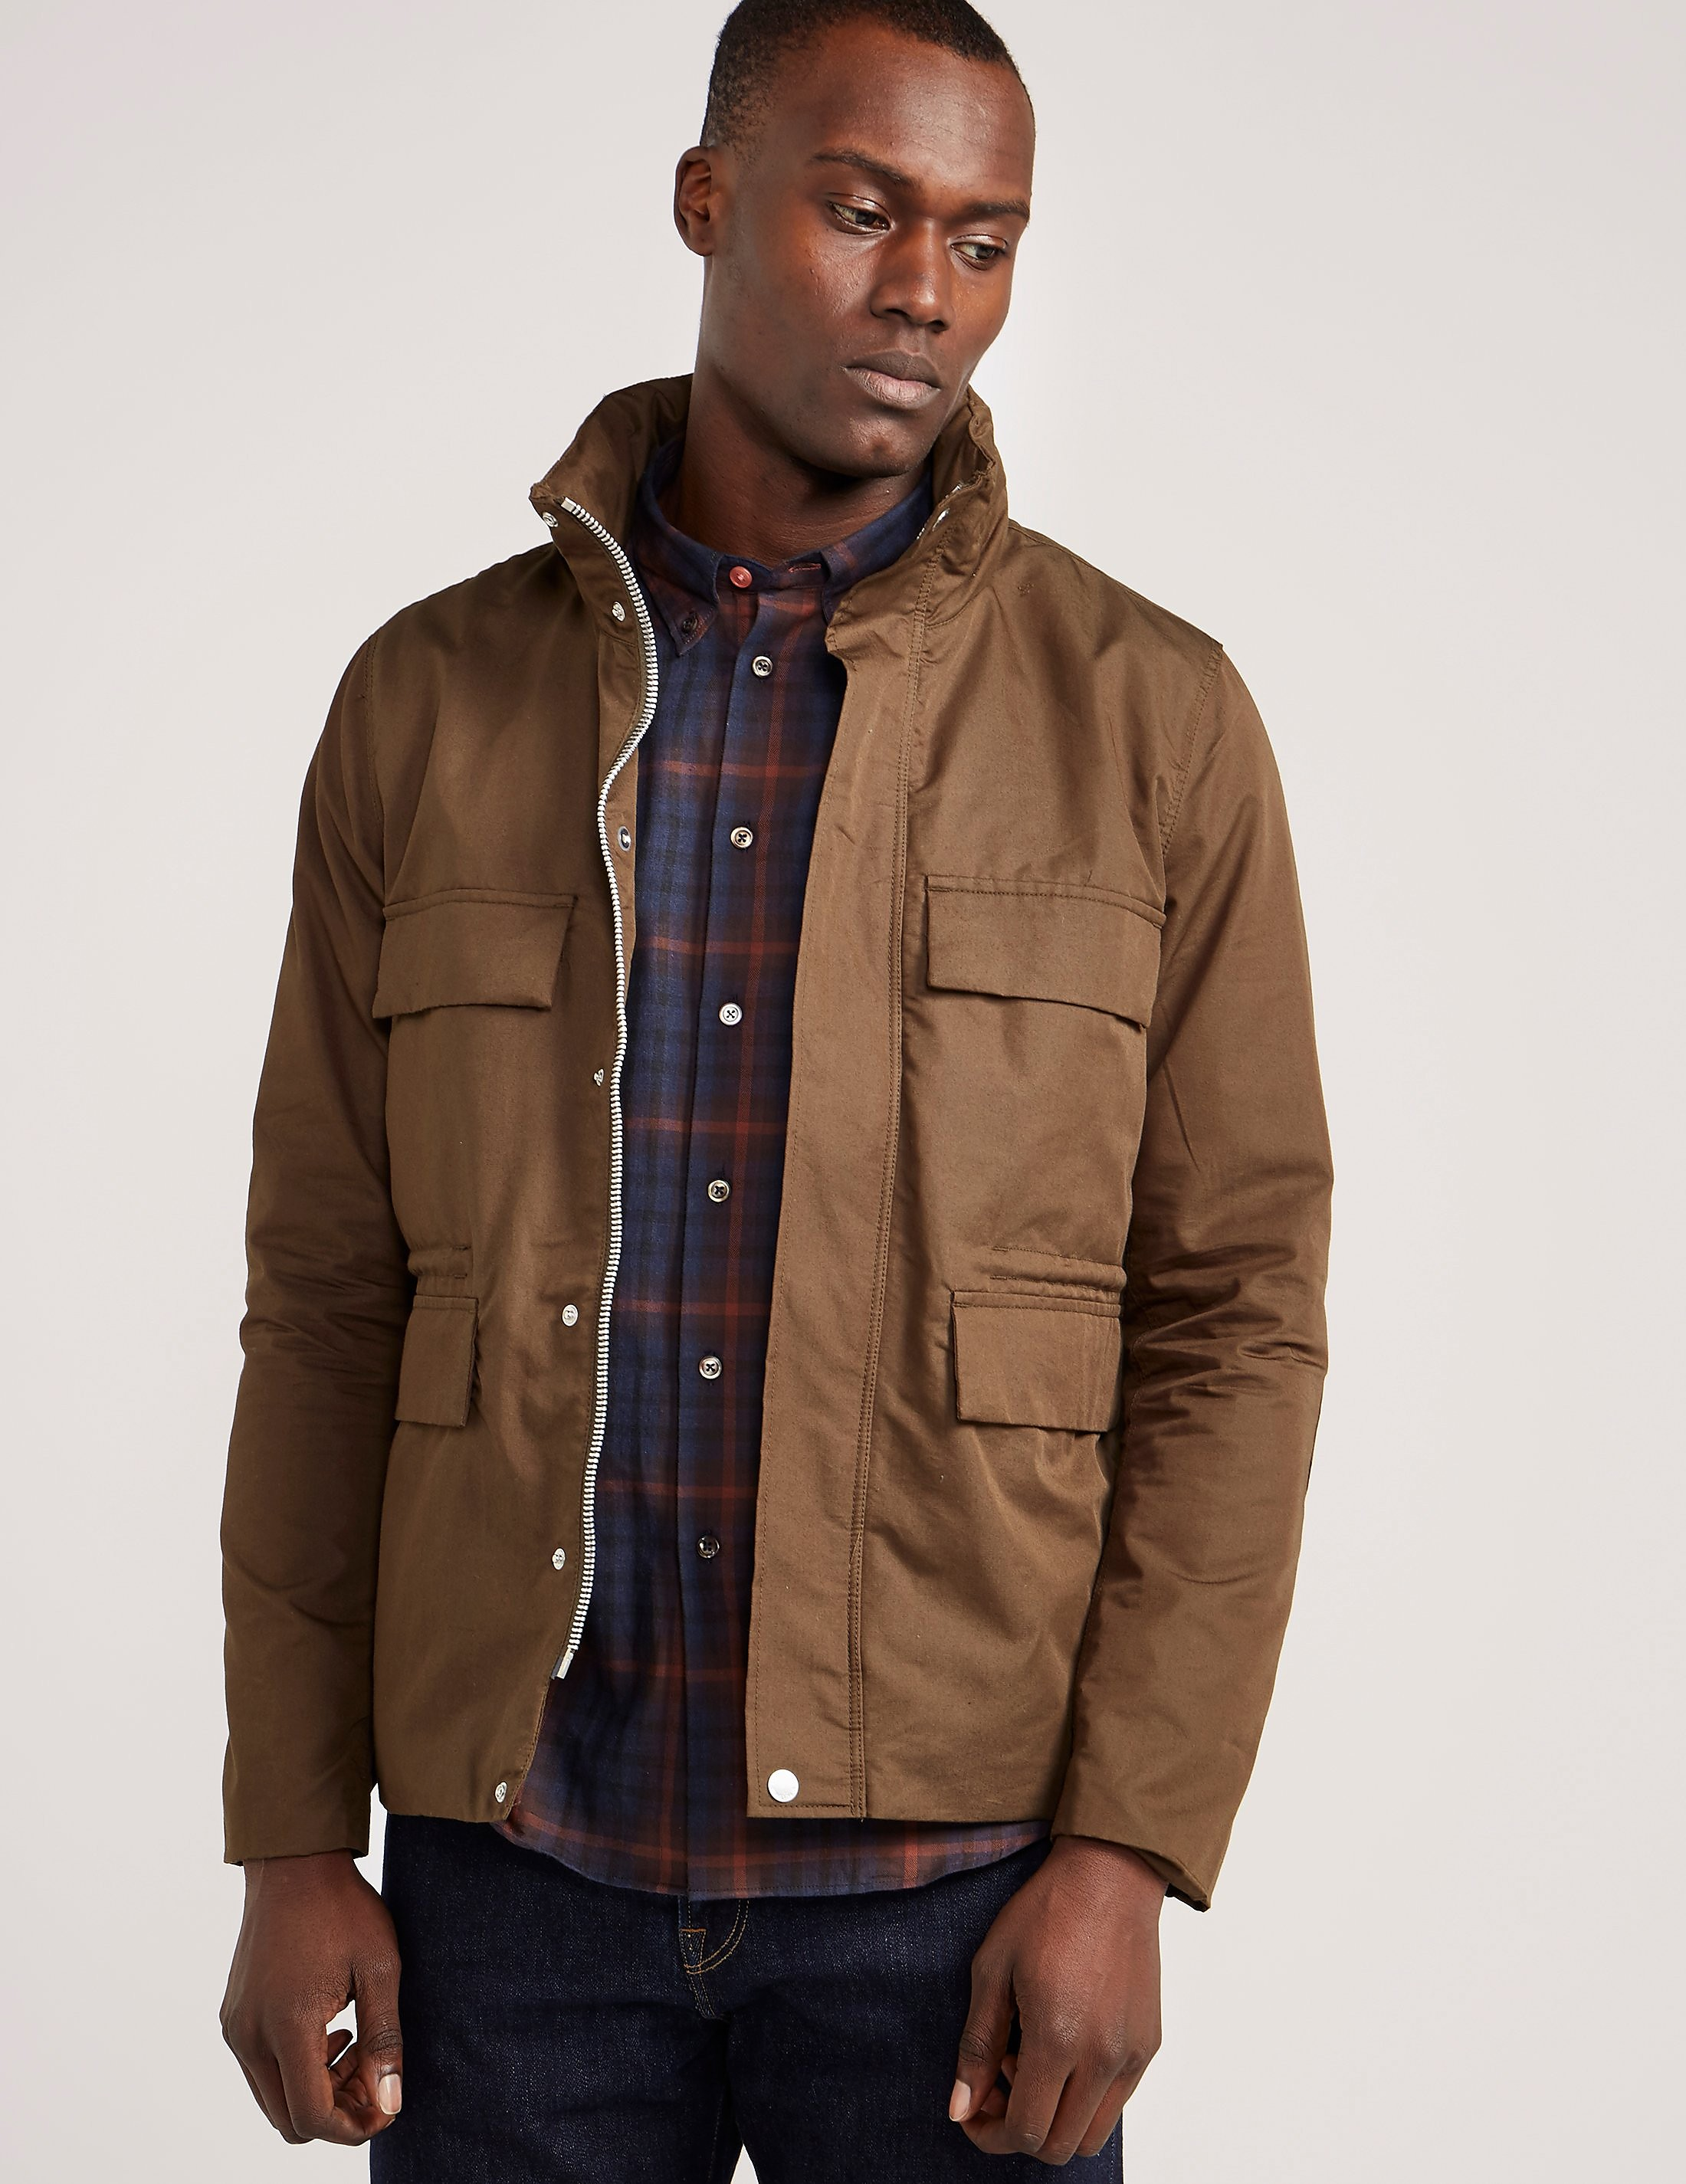 Paul Smith Water Resistant Field Jacket